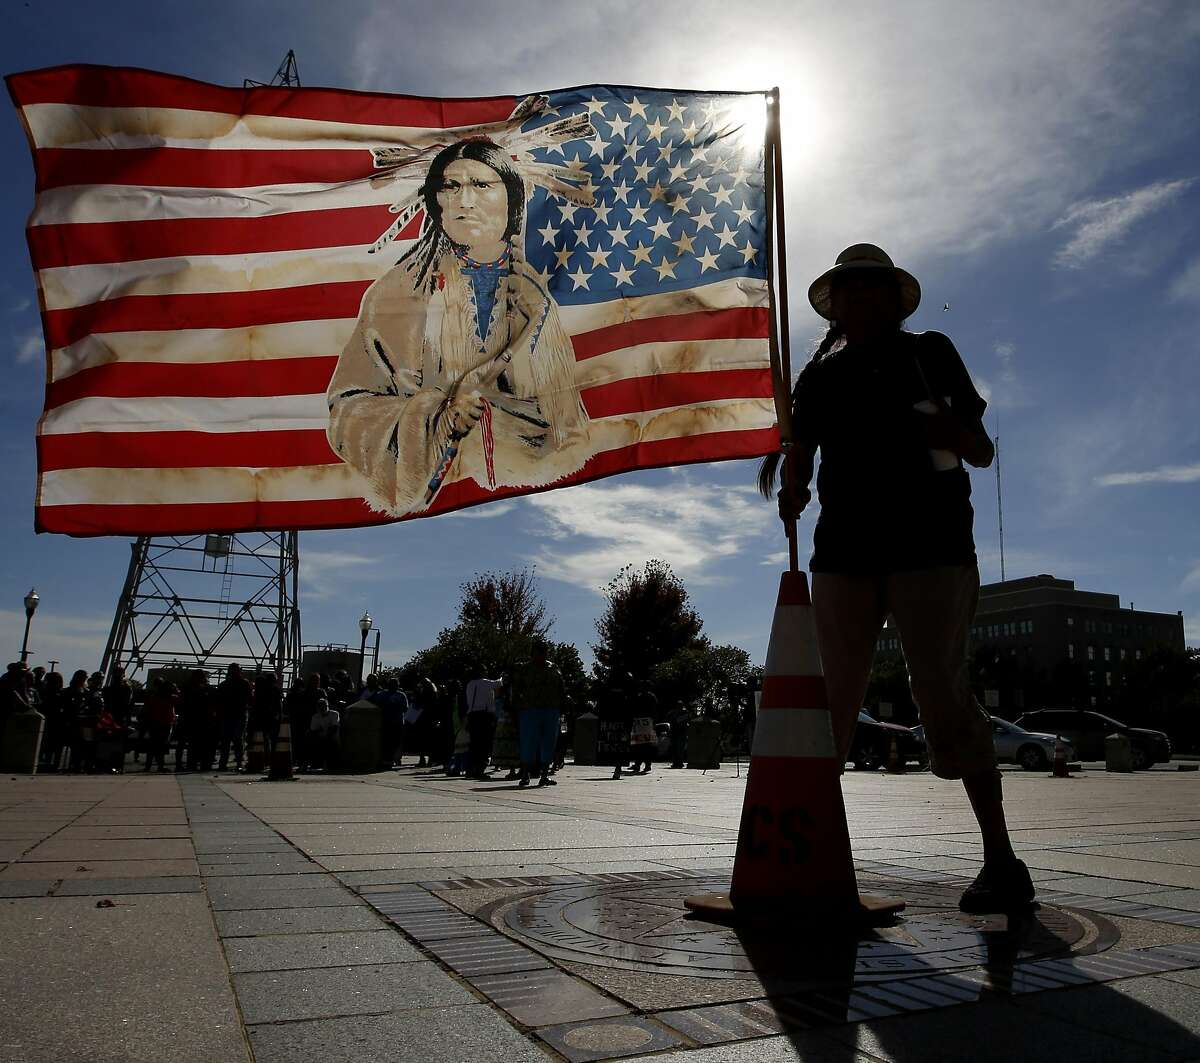 Jennell Downs, with the Kickapoo Tribe of Oklahoma, puts up a flag at the State Capitol in Oklahoma City during a protest against the Dakota Access Pipeline, Monday Oct. 31, 2016. (Steve Gooch/The Oklahoman Via AP)